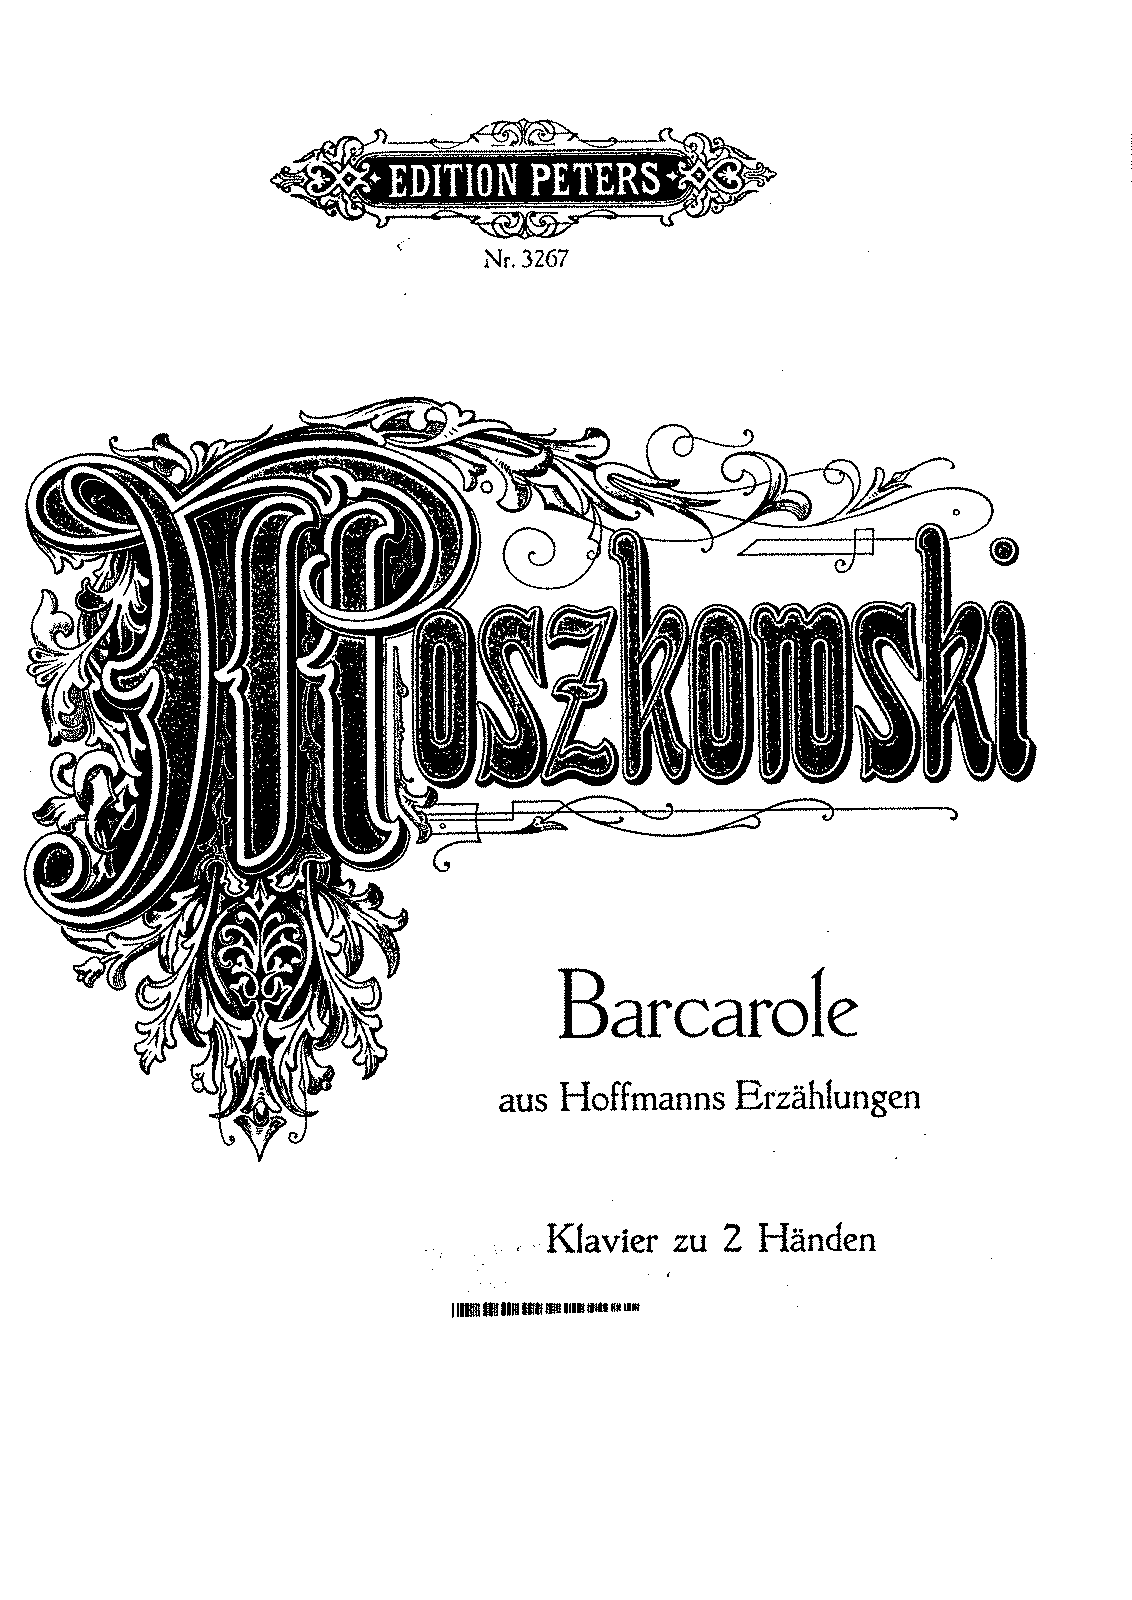 Moszkowski - Transcription - Barcarolle from Tales of Hoffman.pdf